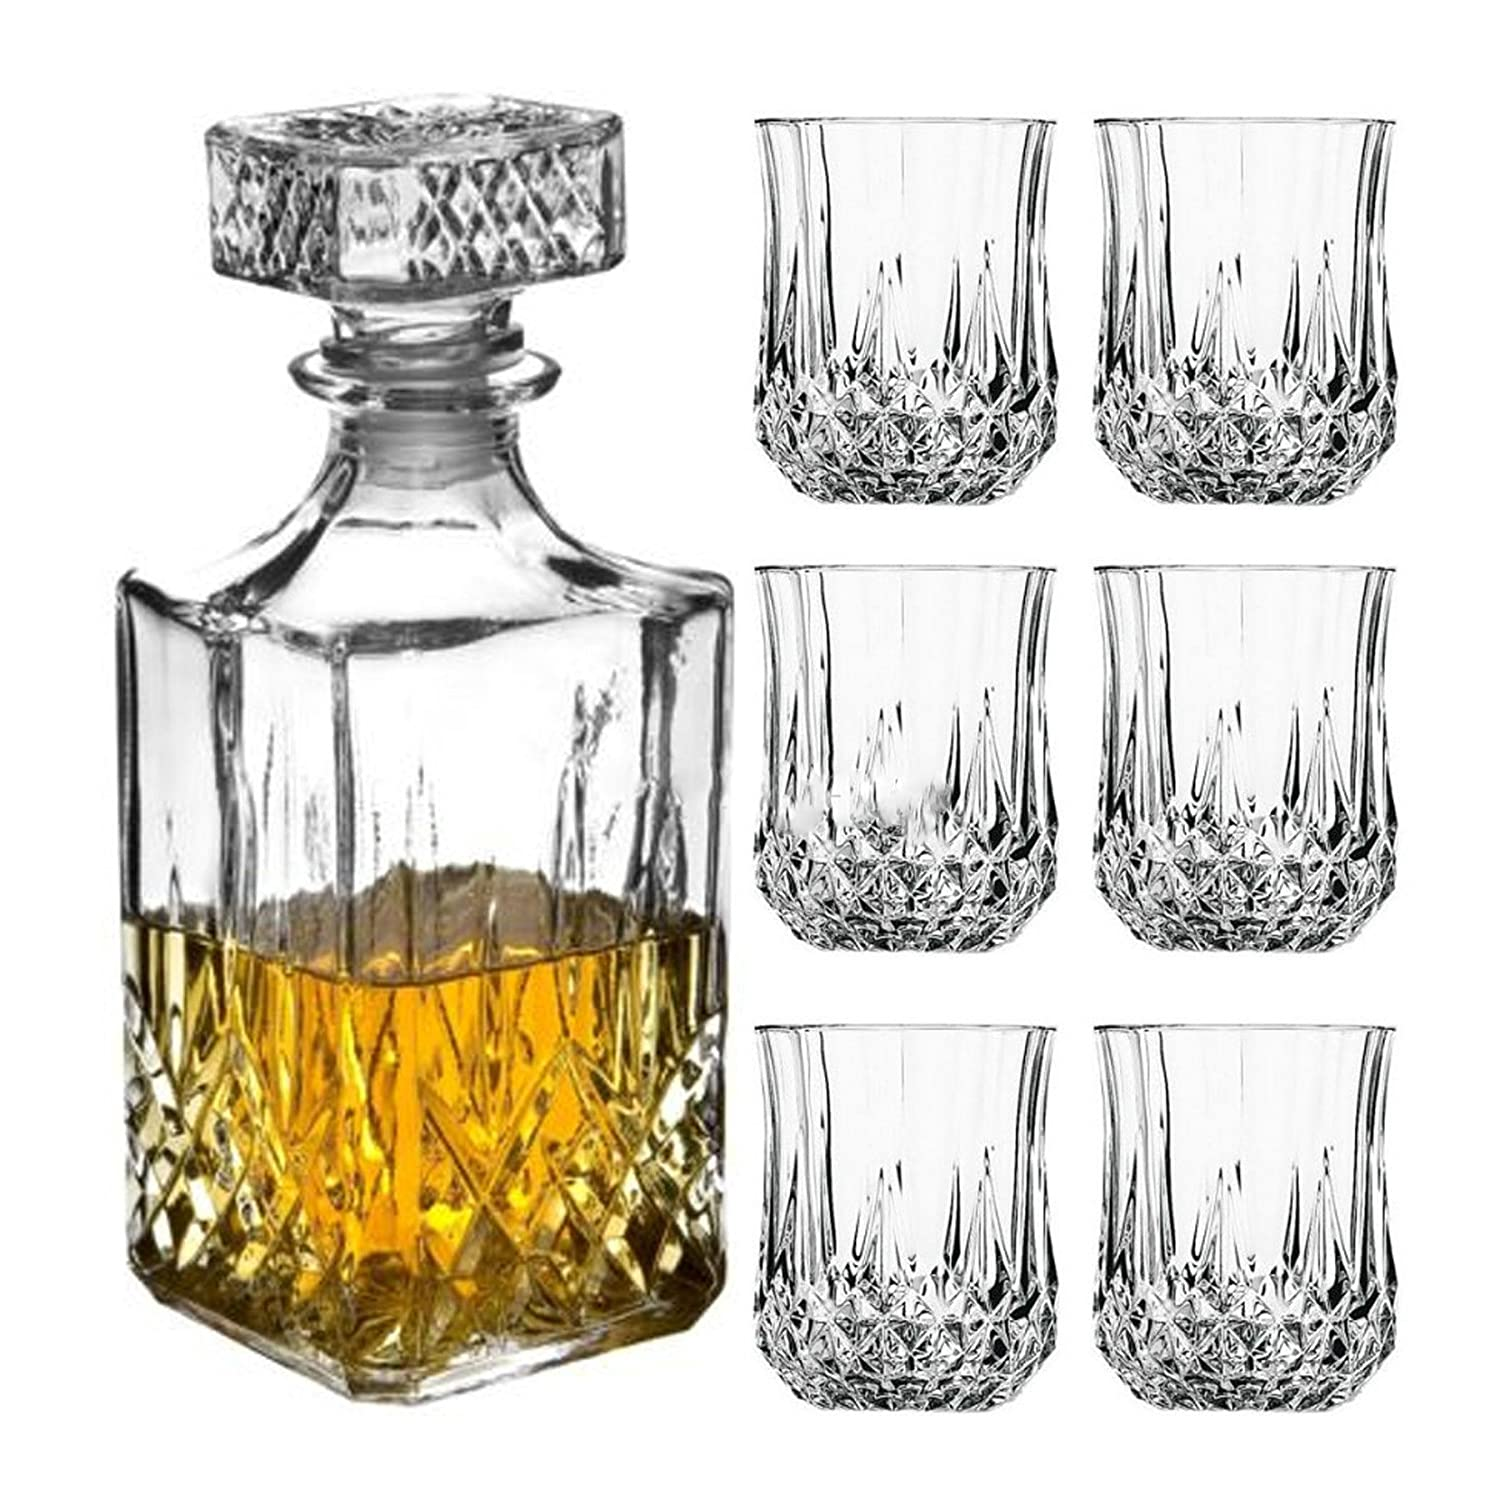 6 x 200ml Glass Whiskey Wine Tumblers & Square Glass Decanter Bottle Boxed Set Alcohol Decanter